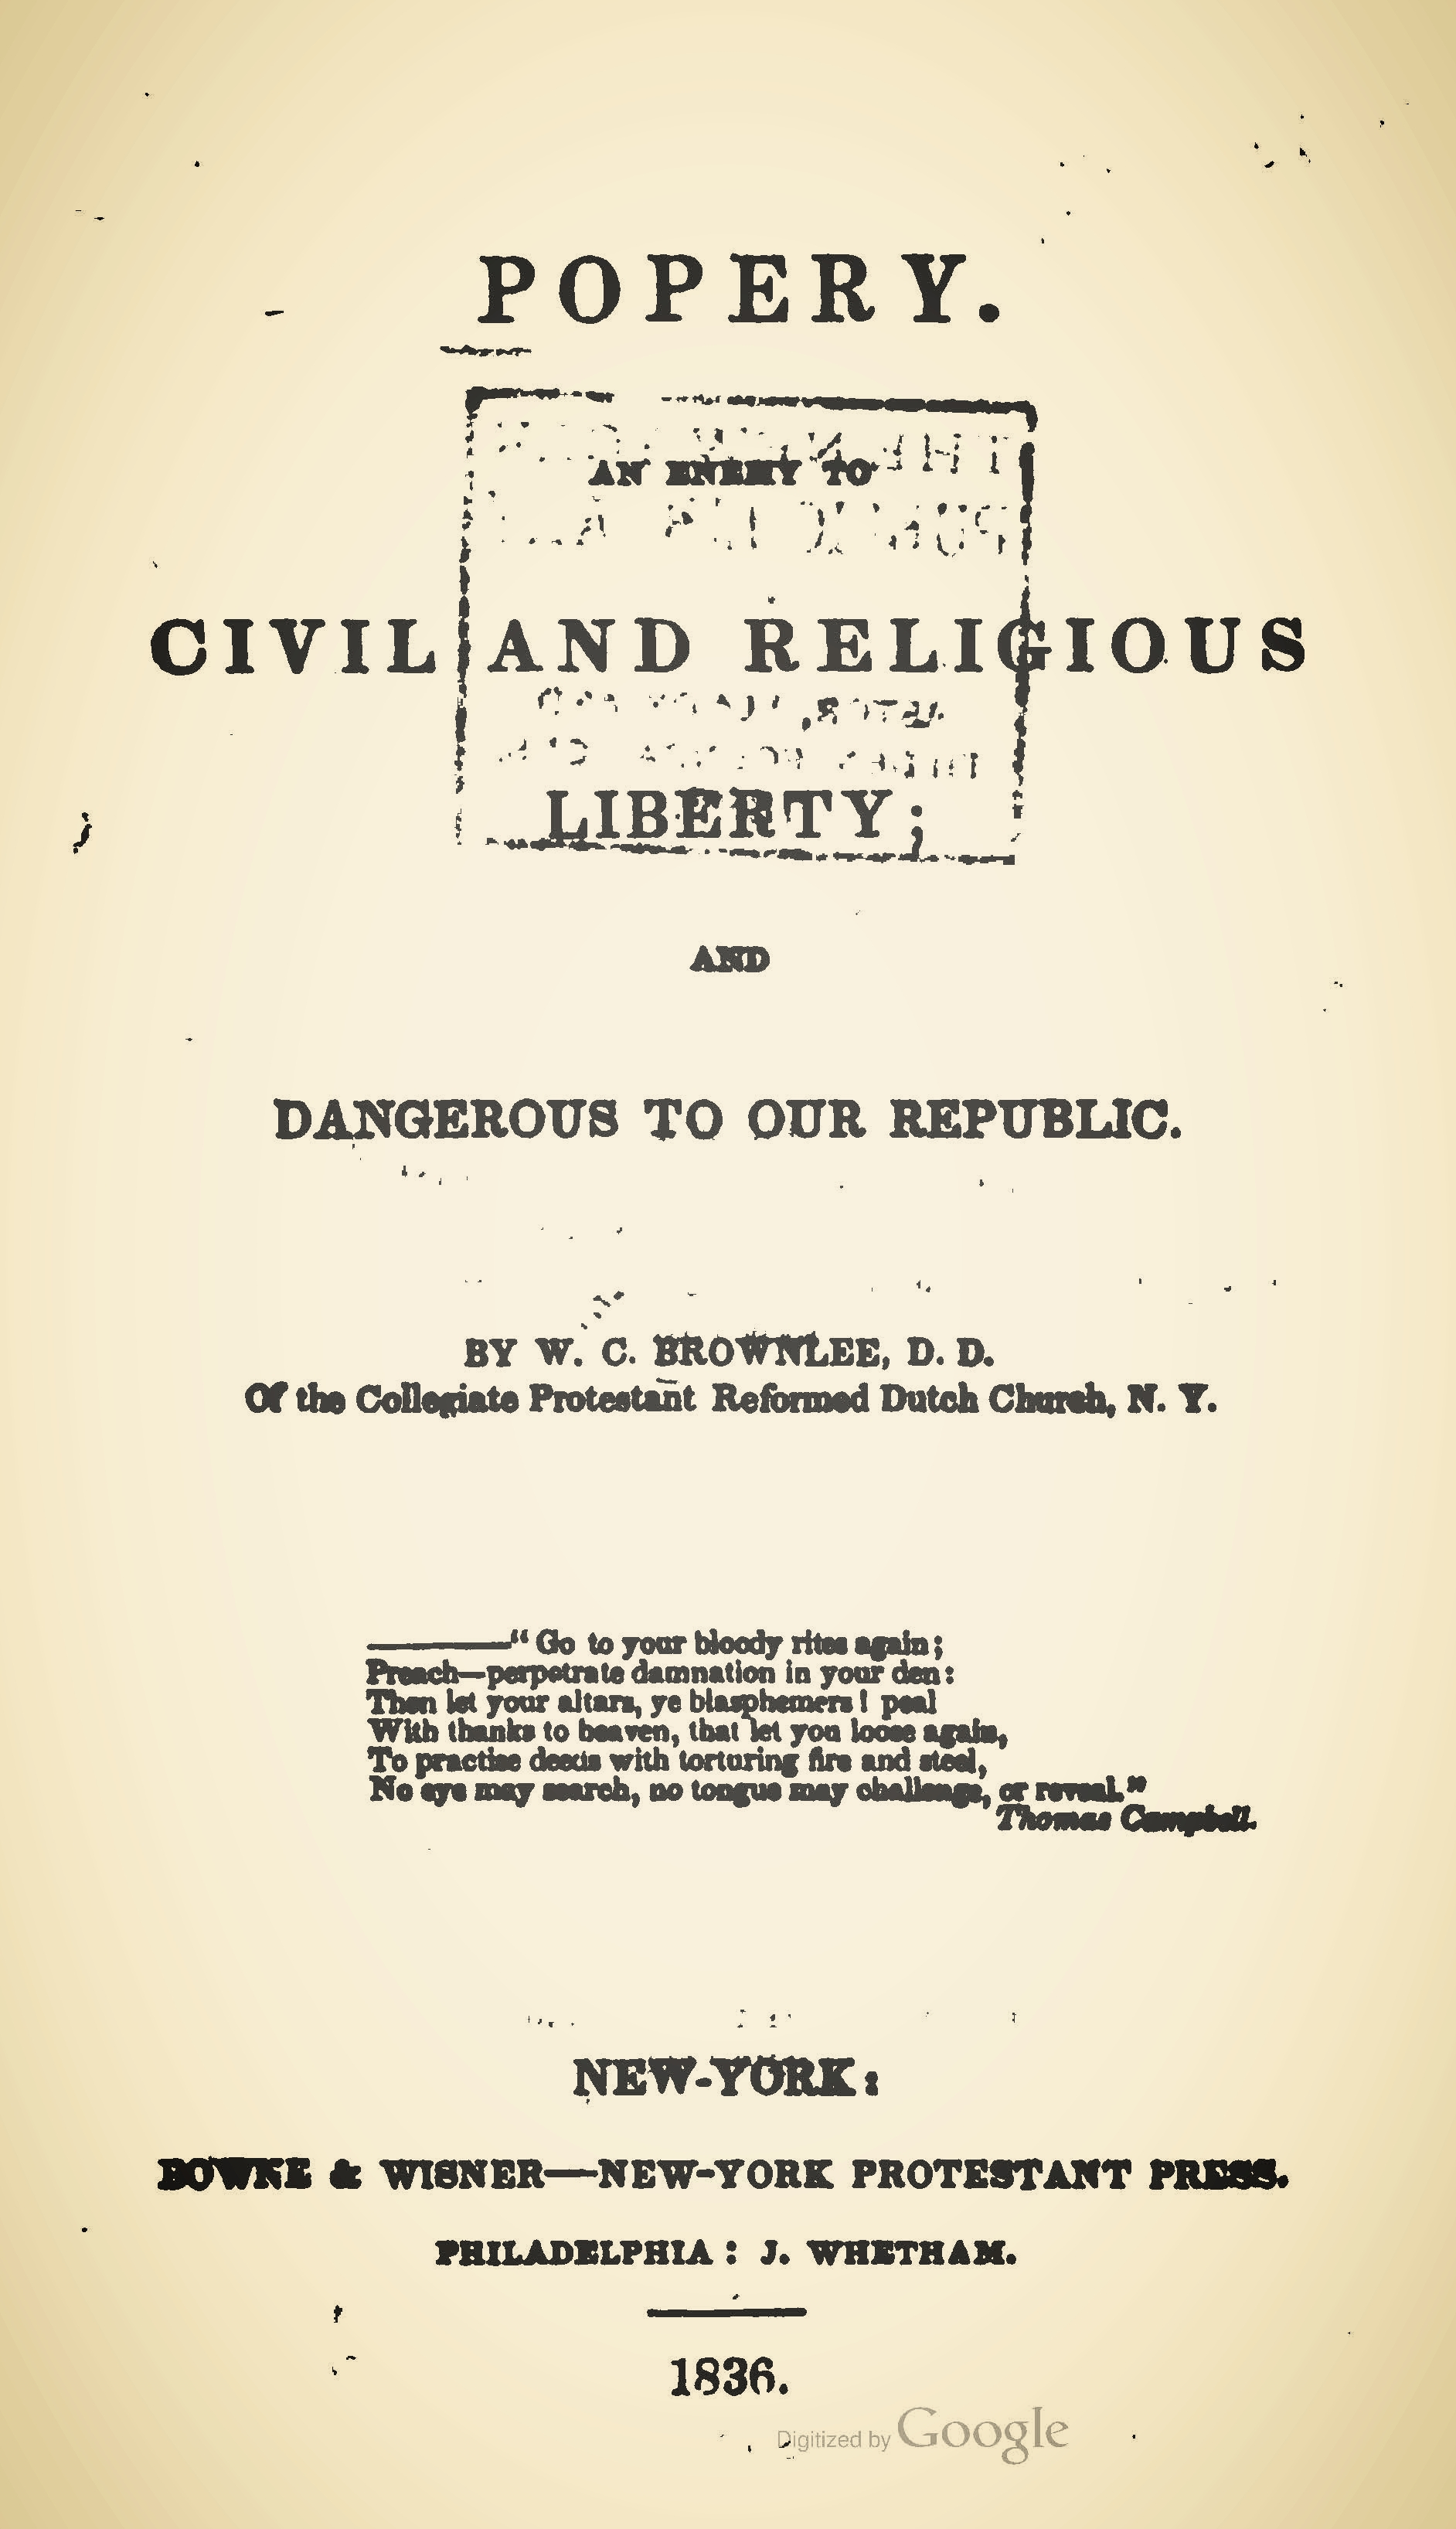 Brownlee, William Craig, Popery An Enemy to Civil and Religious Freedom, and Dangerous to Our Republic Title Page.jpg